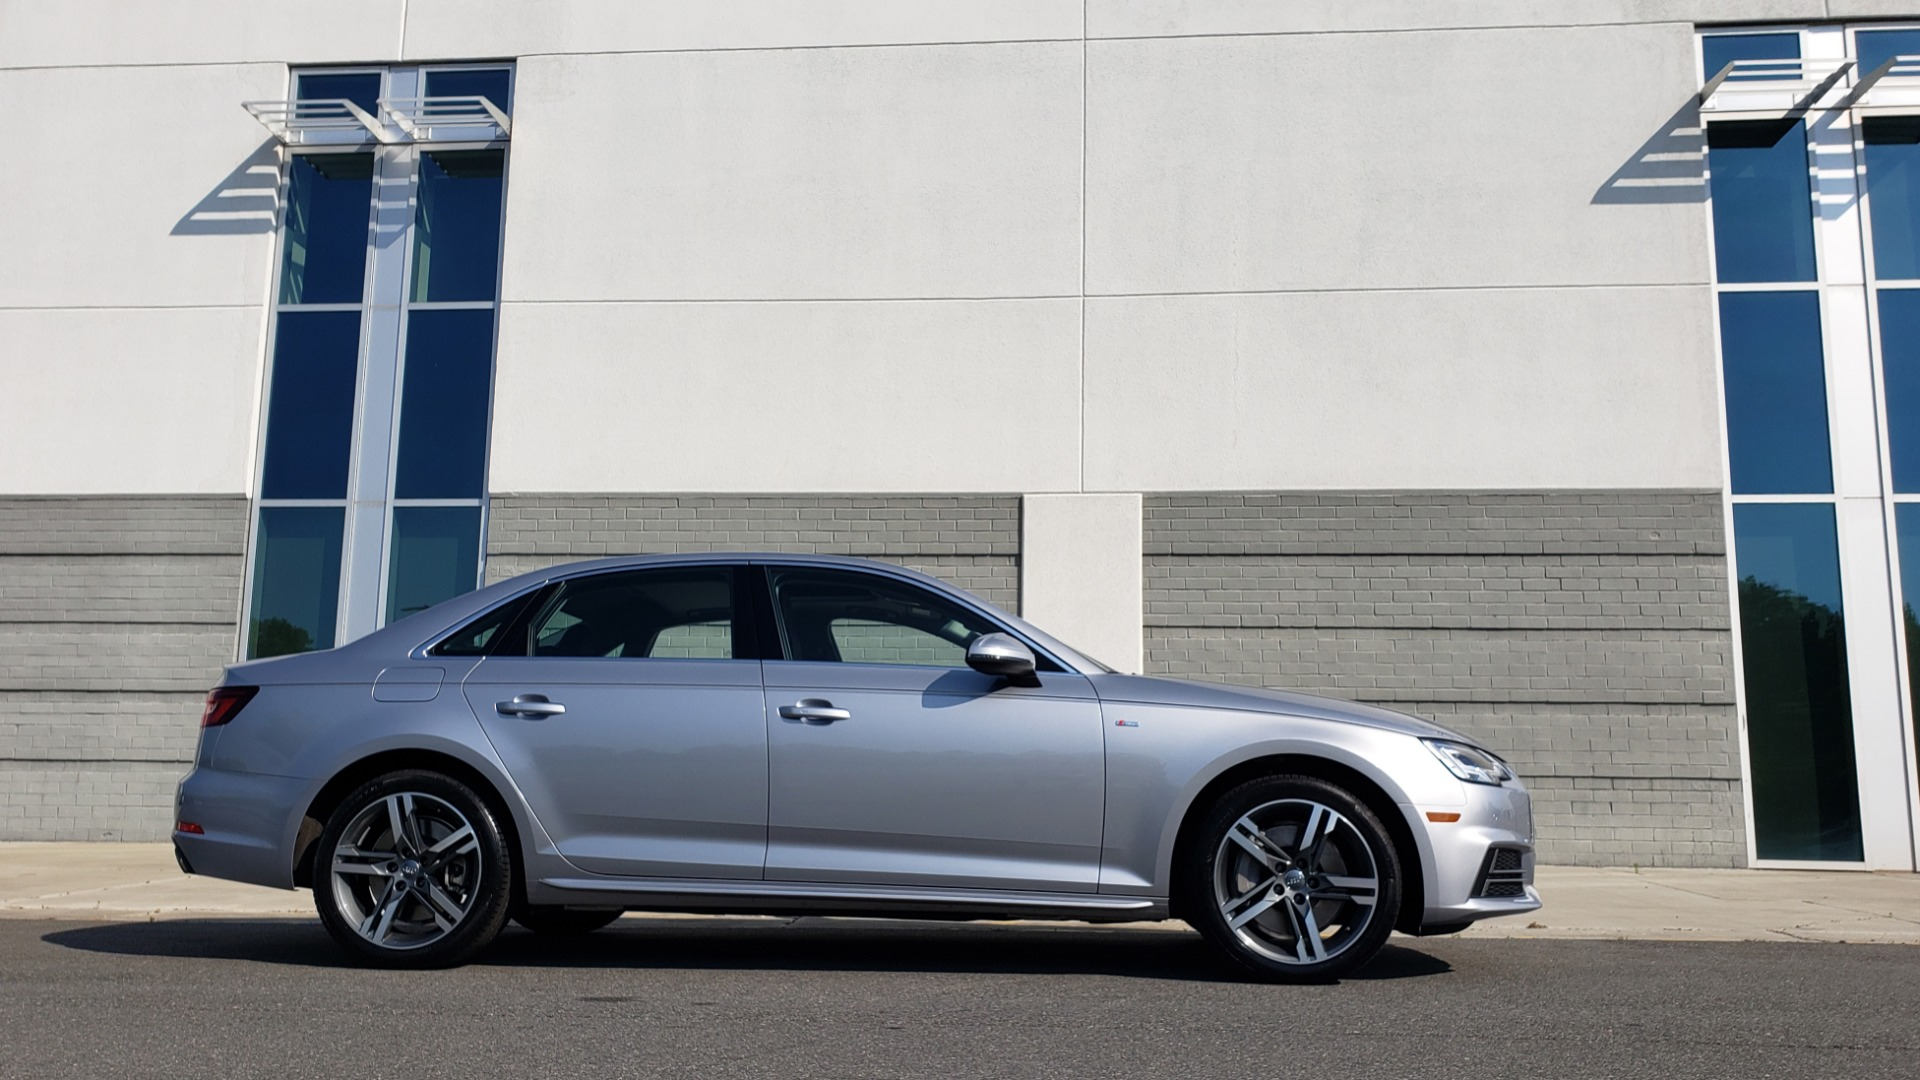 Used 2018 Audi A4 PREMIUM PLUS 2.0T / NAV / SUNROOF / B&O SND / CLD WTHR / REARVIEW for sale $29,395 at Formula Imports in Charlotte NC 28227 9